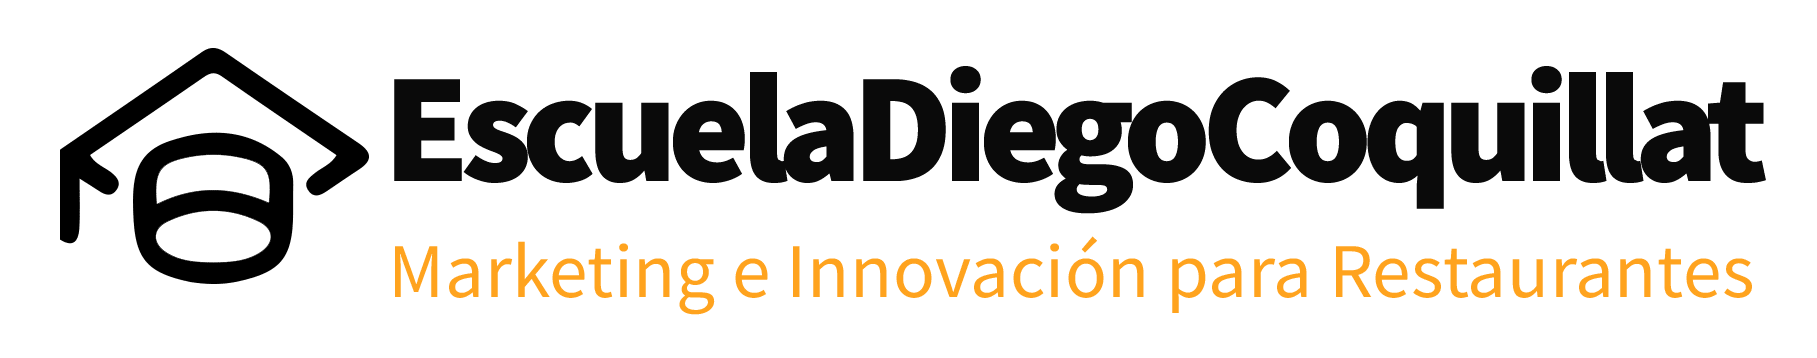 Hospitality School Diego Coquillat - Digital Marketing and Innovation course Restaurants and Gastronomy